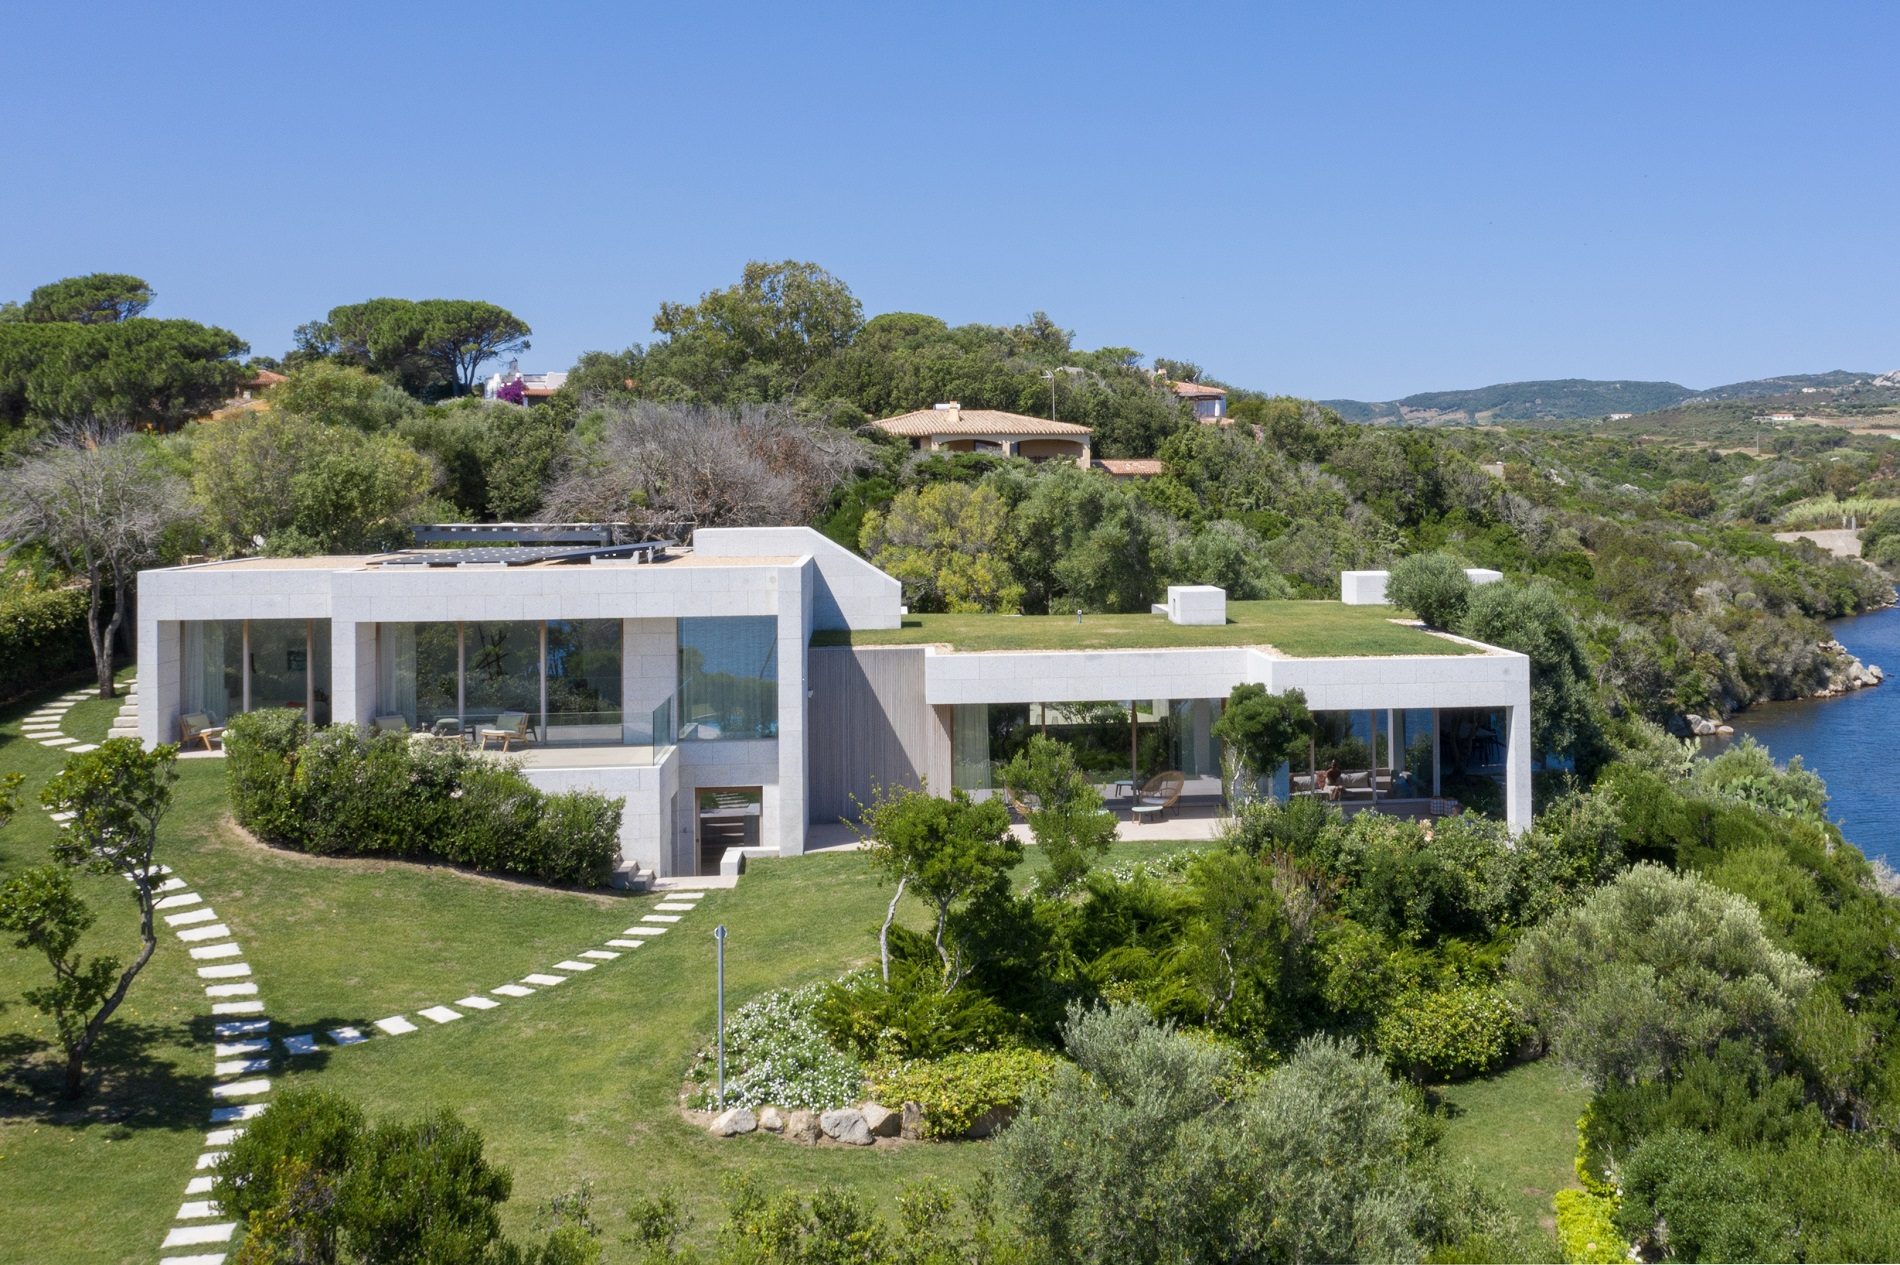 28 The Top 10 Eco Friendly Features for Today's Luxury Homes ...